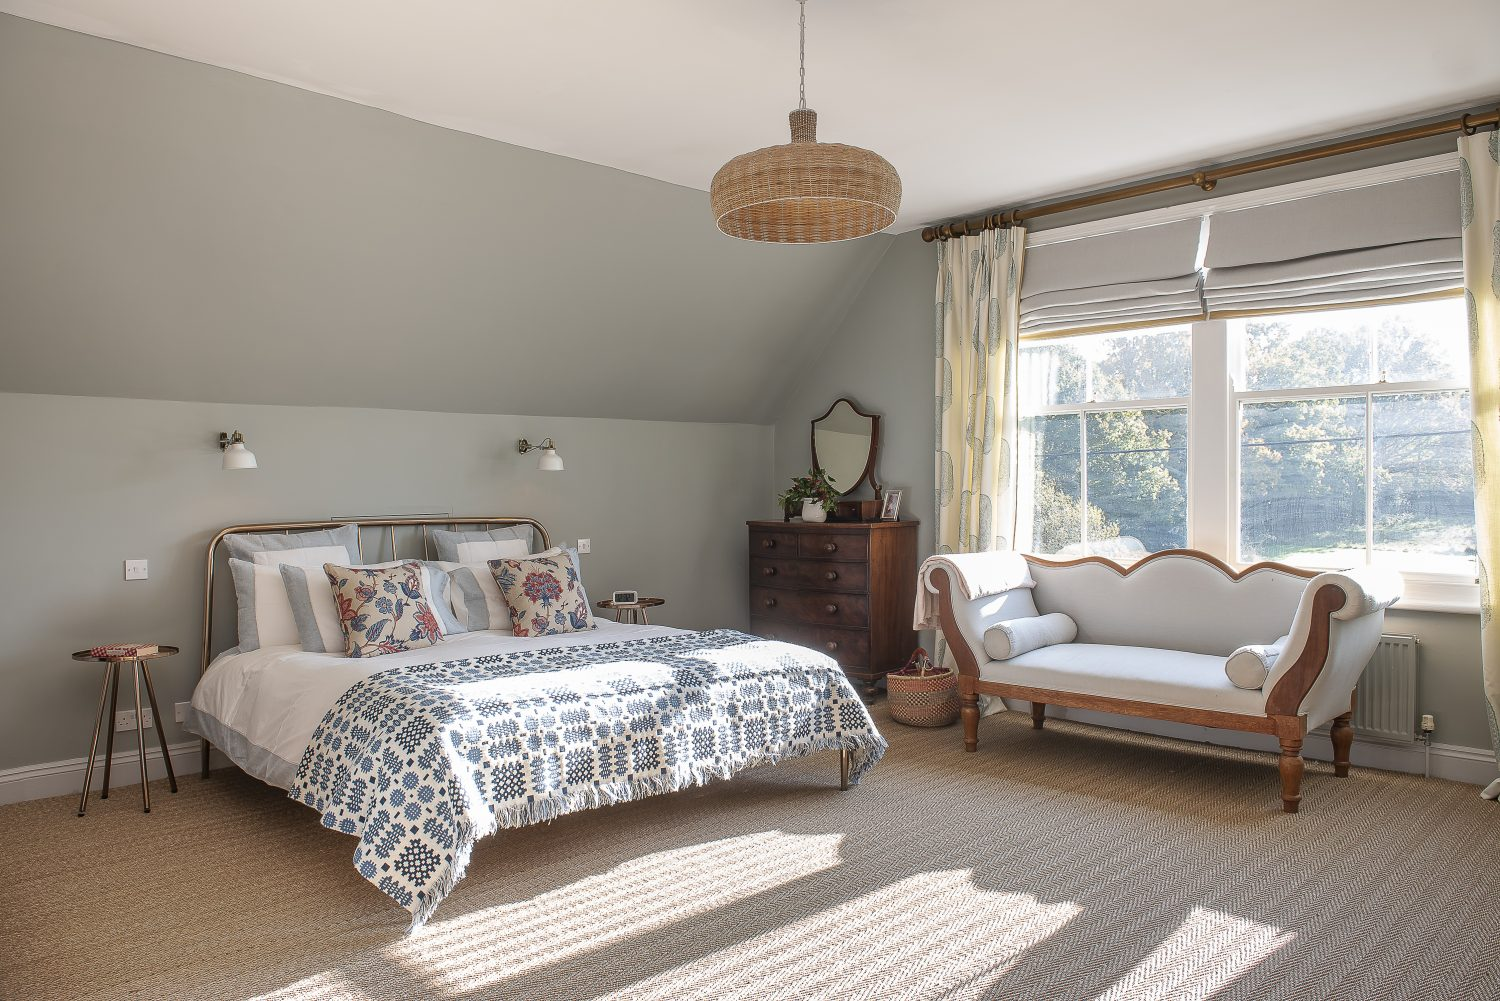 At the very top of the house, the light filled master bedroom looks out over the old post office and former village green